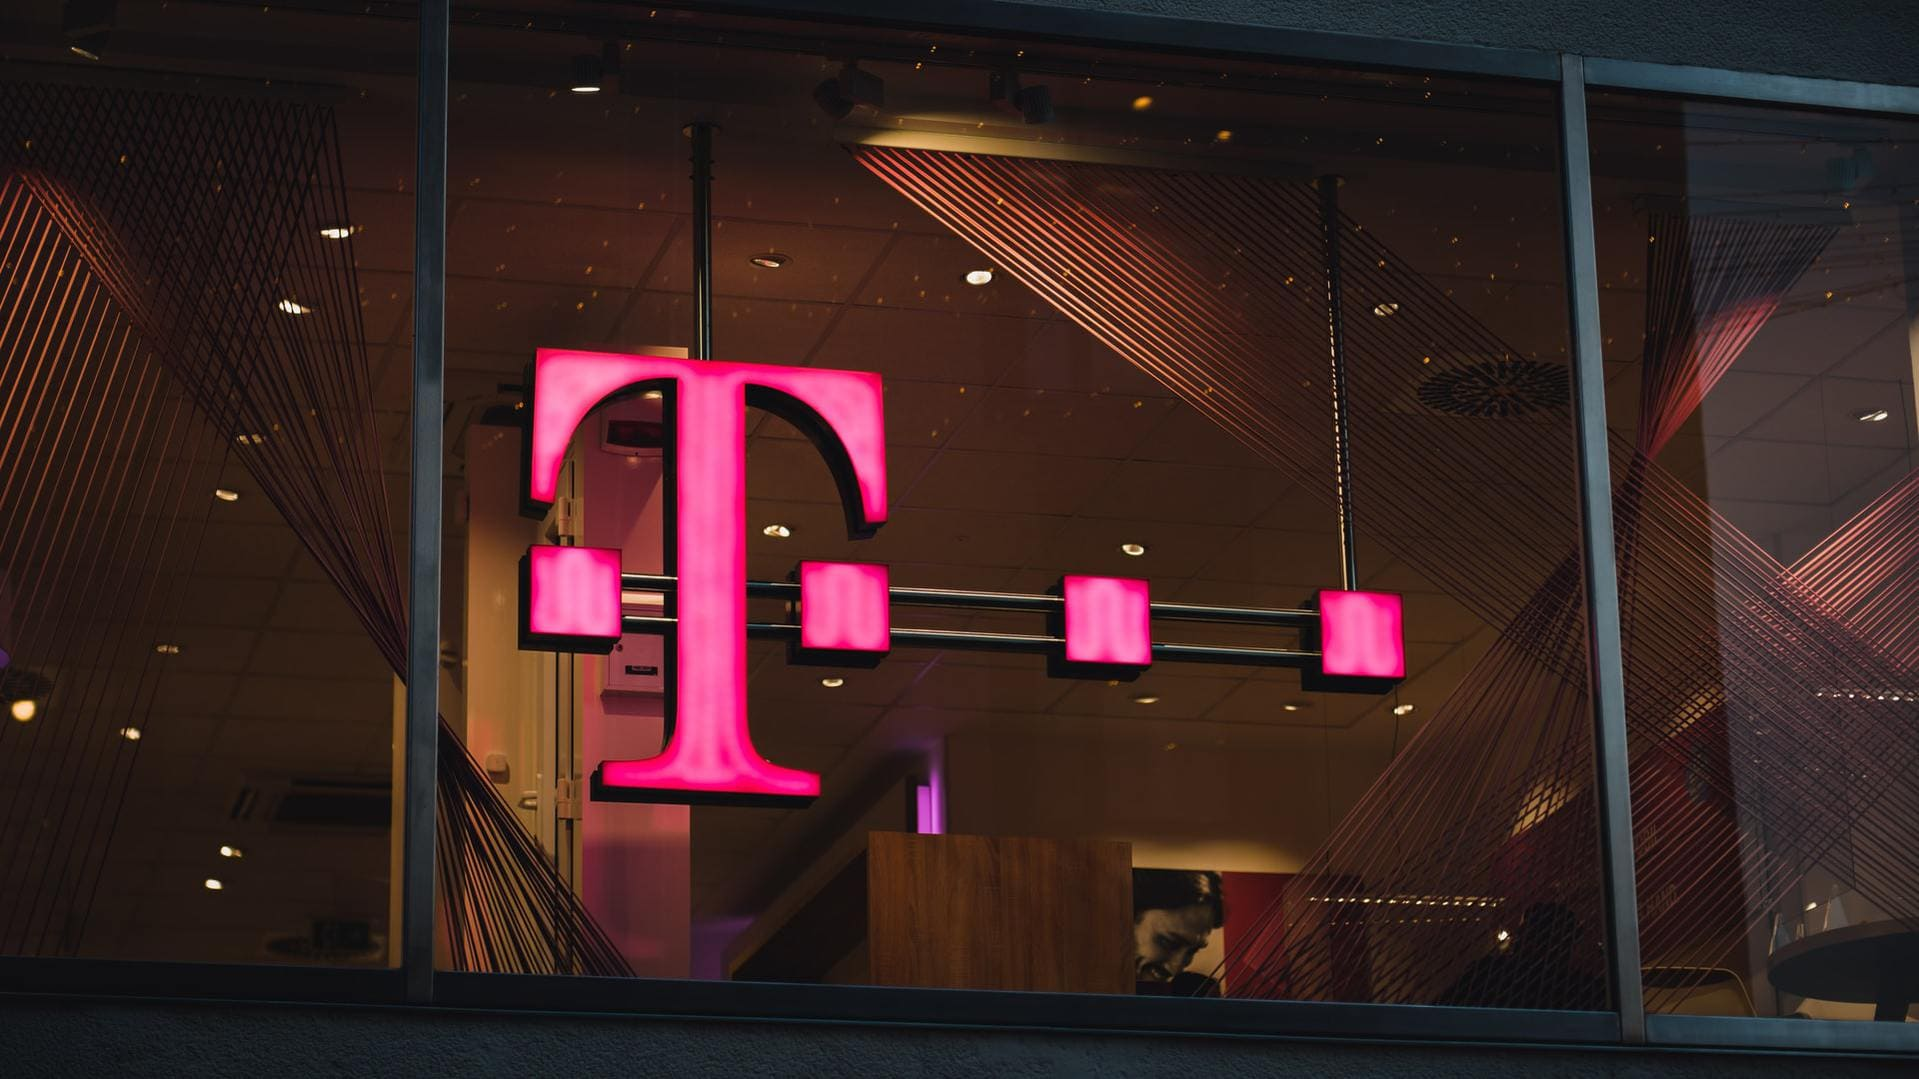 Yet another T-Mobile data breach in 2021